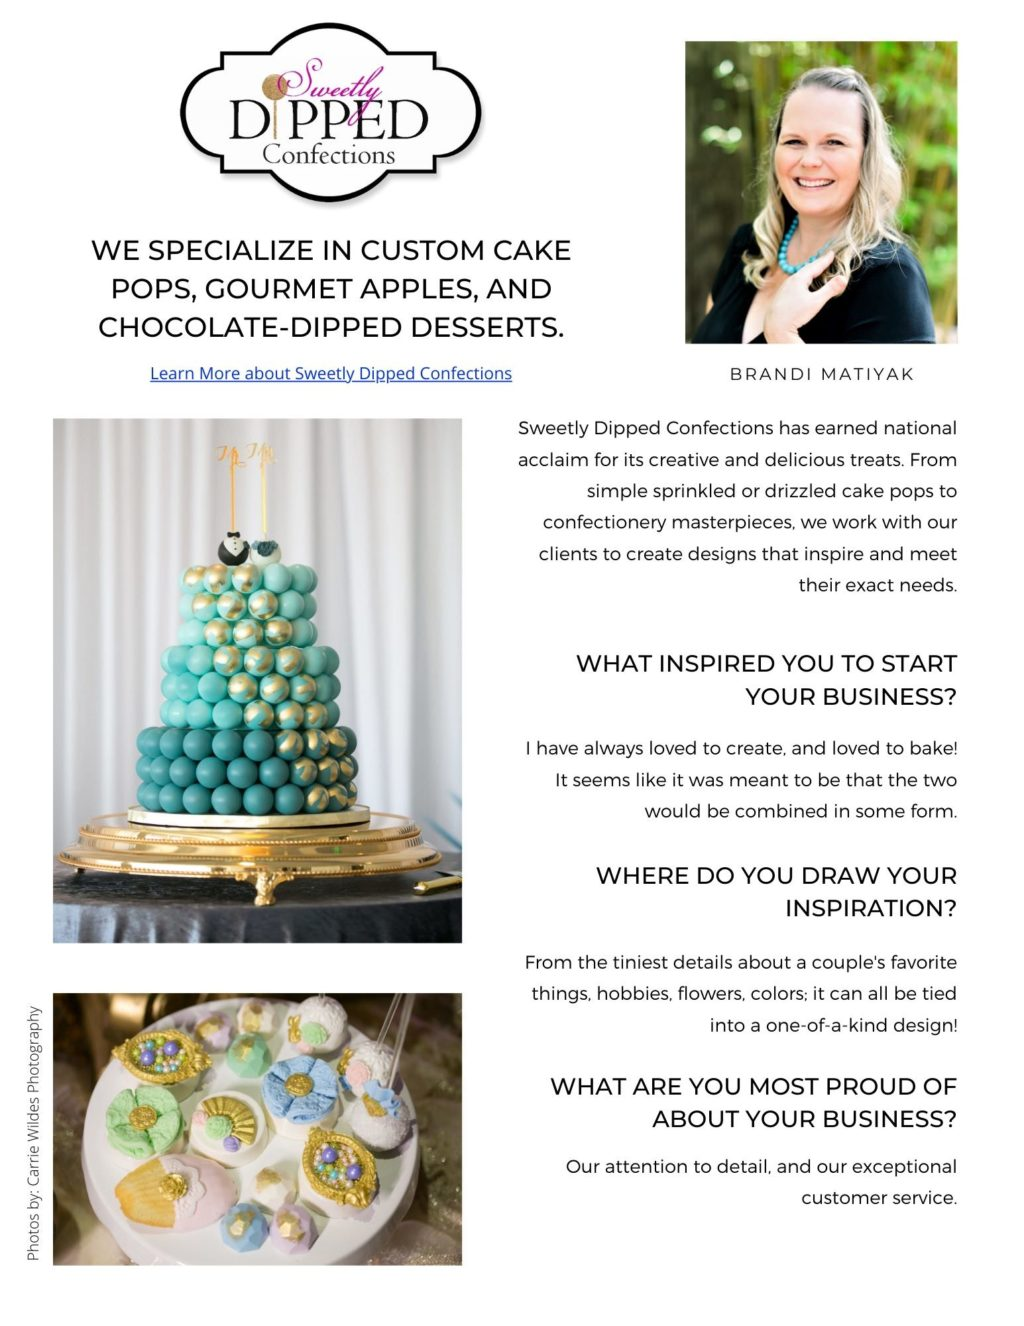 Who's Who Tampa Bay Wedding Cake Bakers   Best Wedding Cake Sweetly Dipped Confections